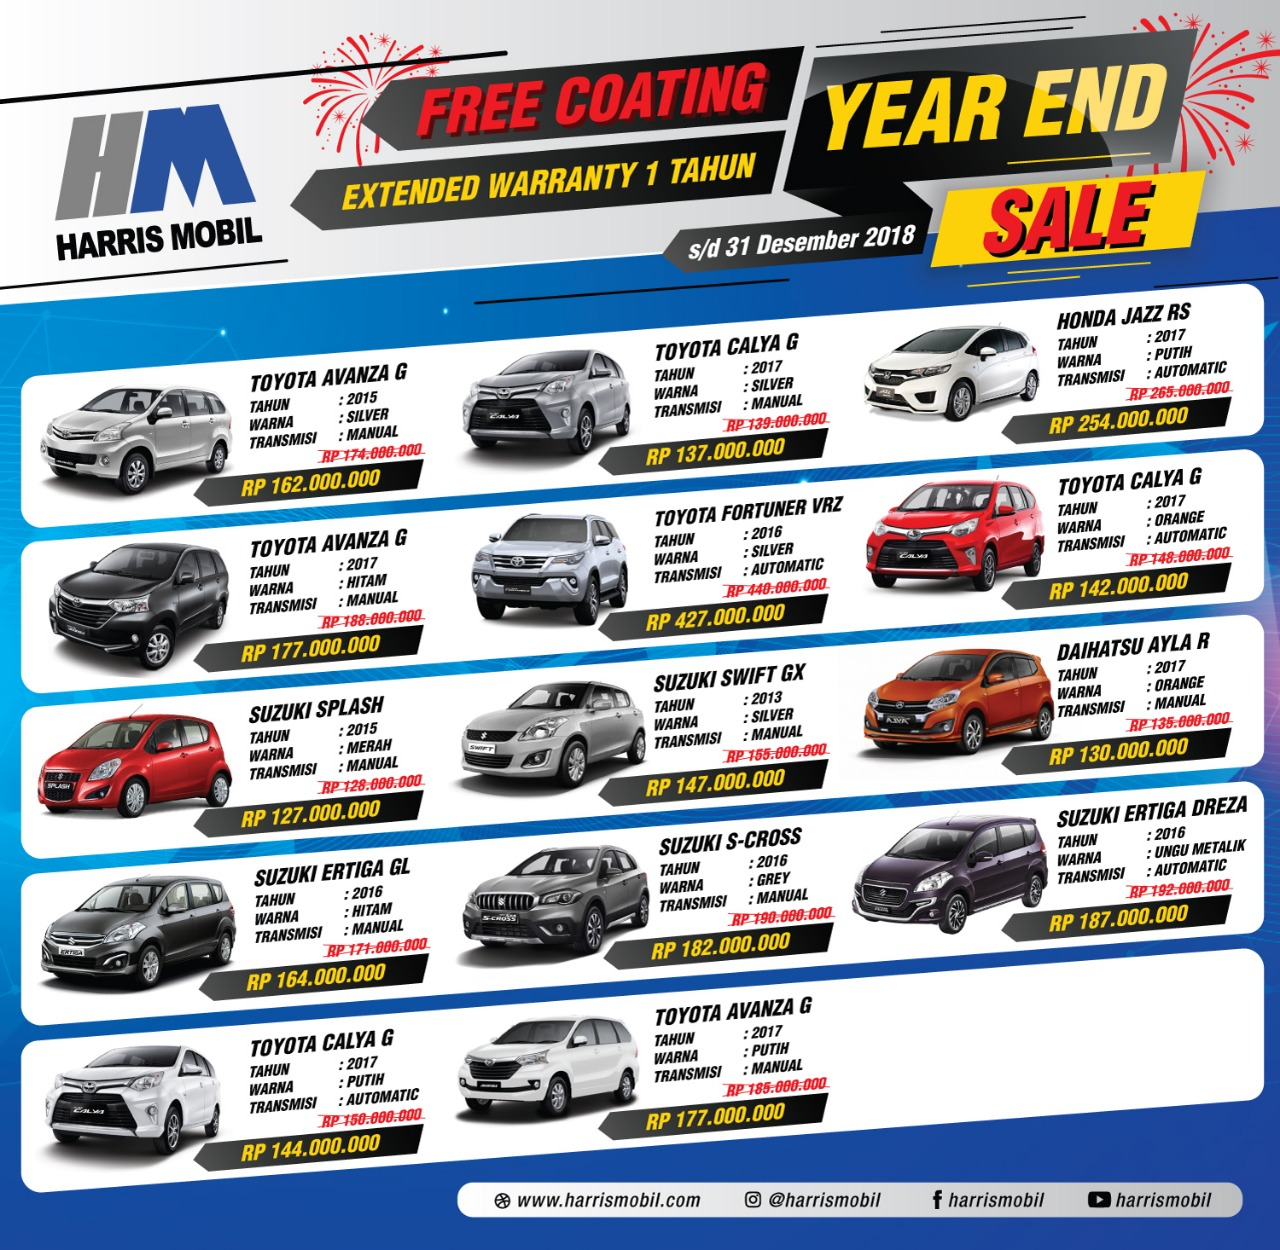 Year End Sale 2018